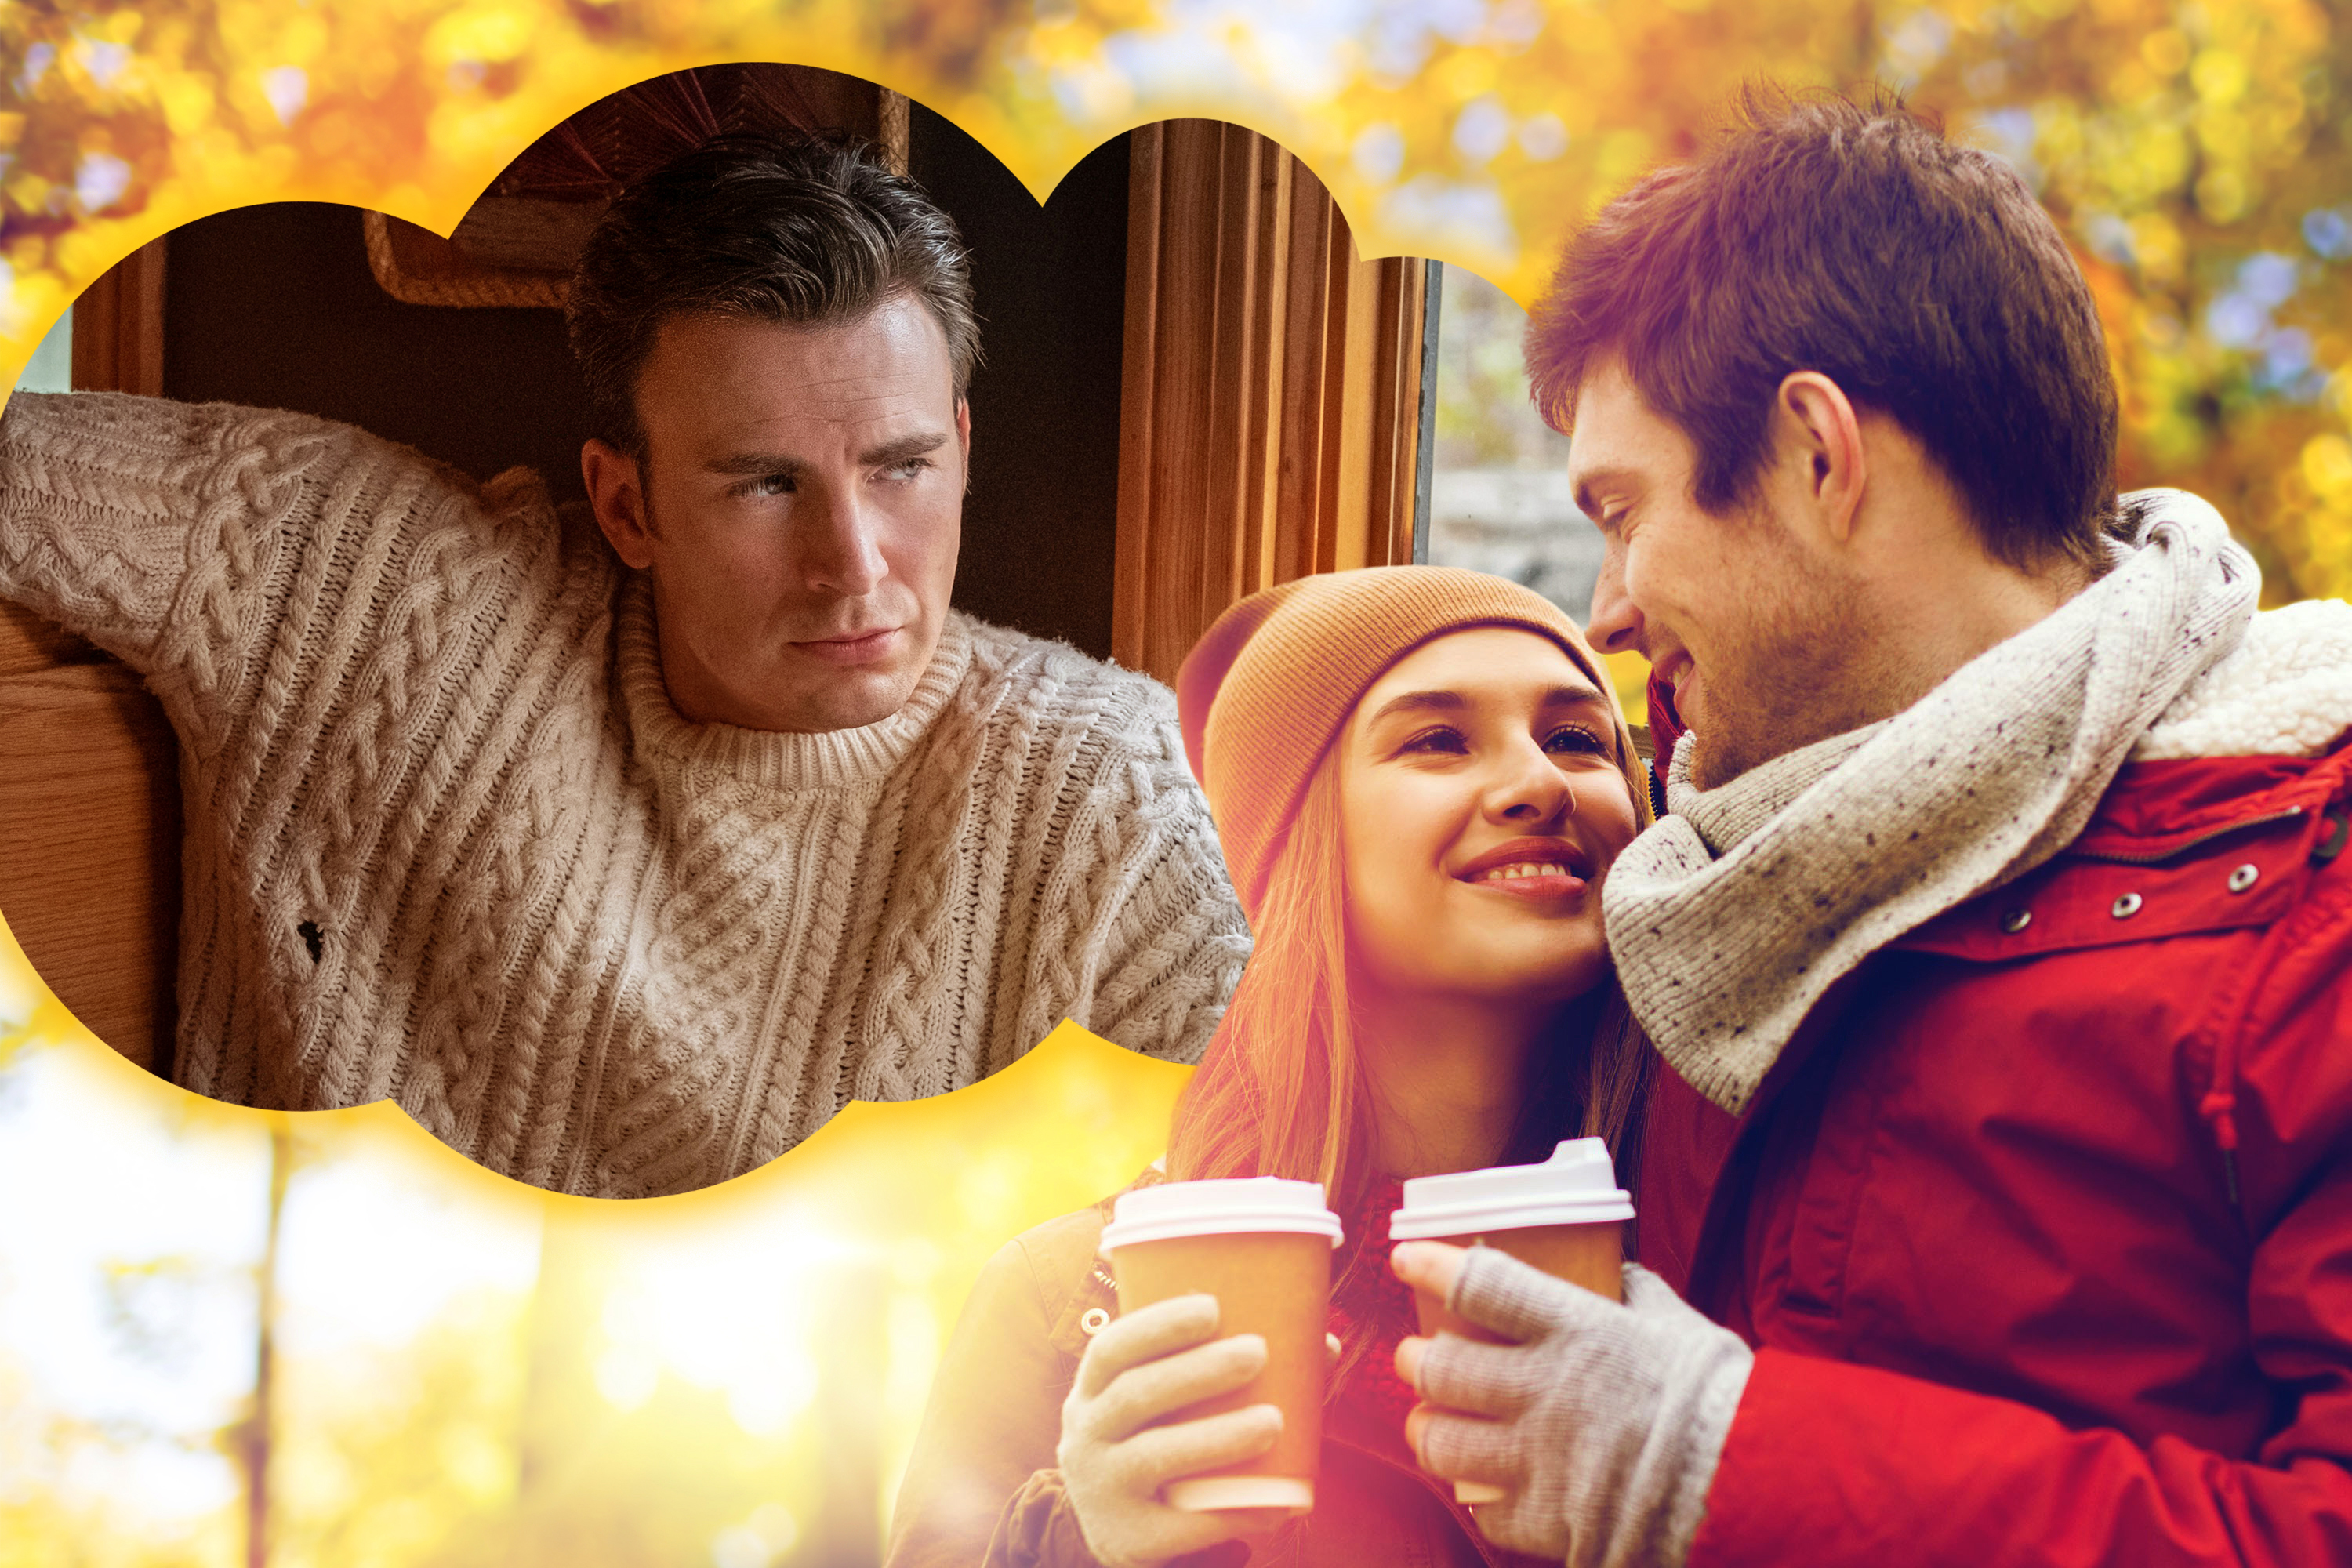 A couple holding take out coffees gaze at each other lovingly with Chris Evans in the movie Knives Out looking down on them from a thought bubble